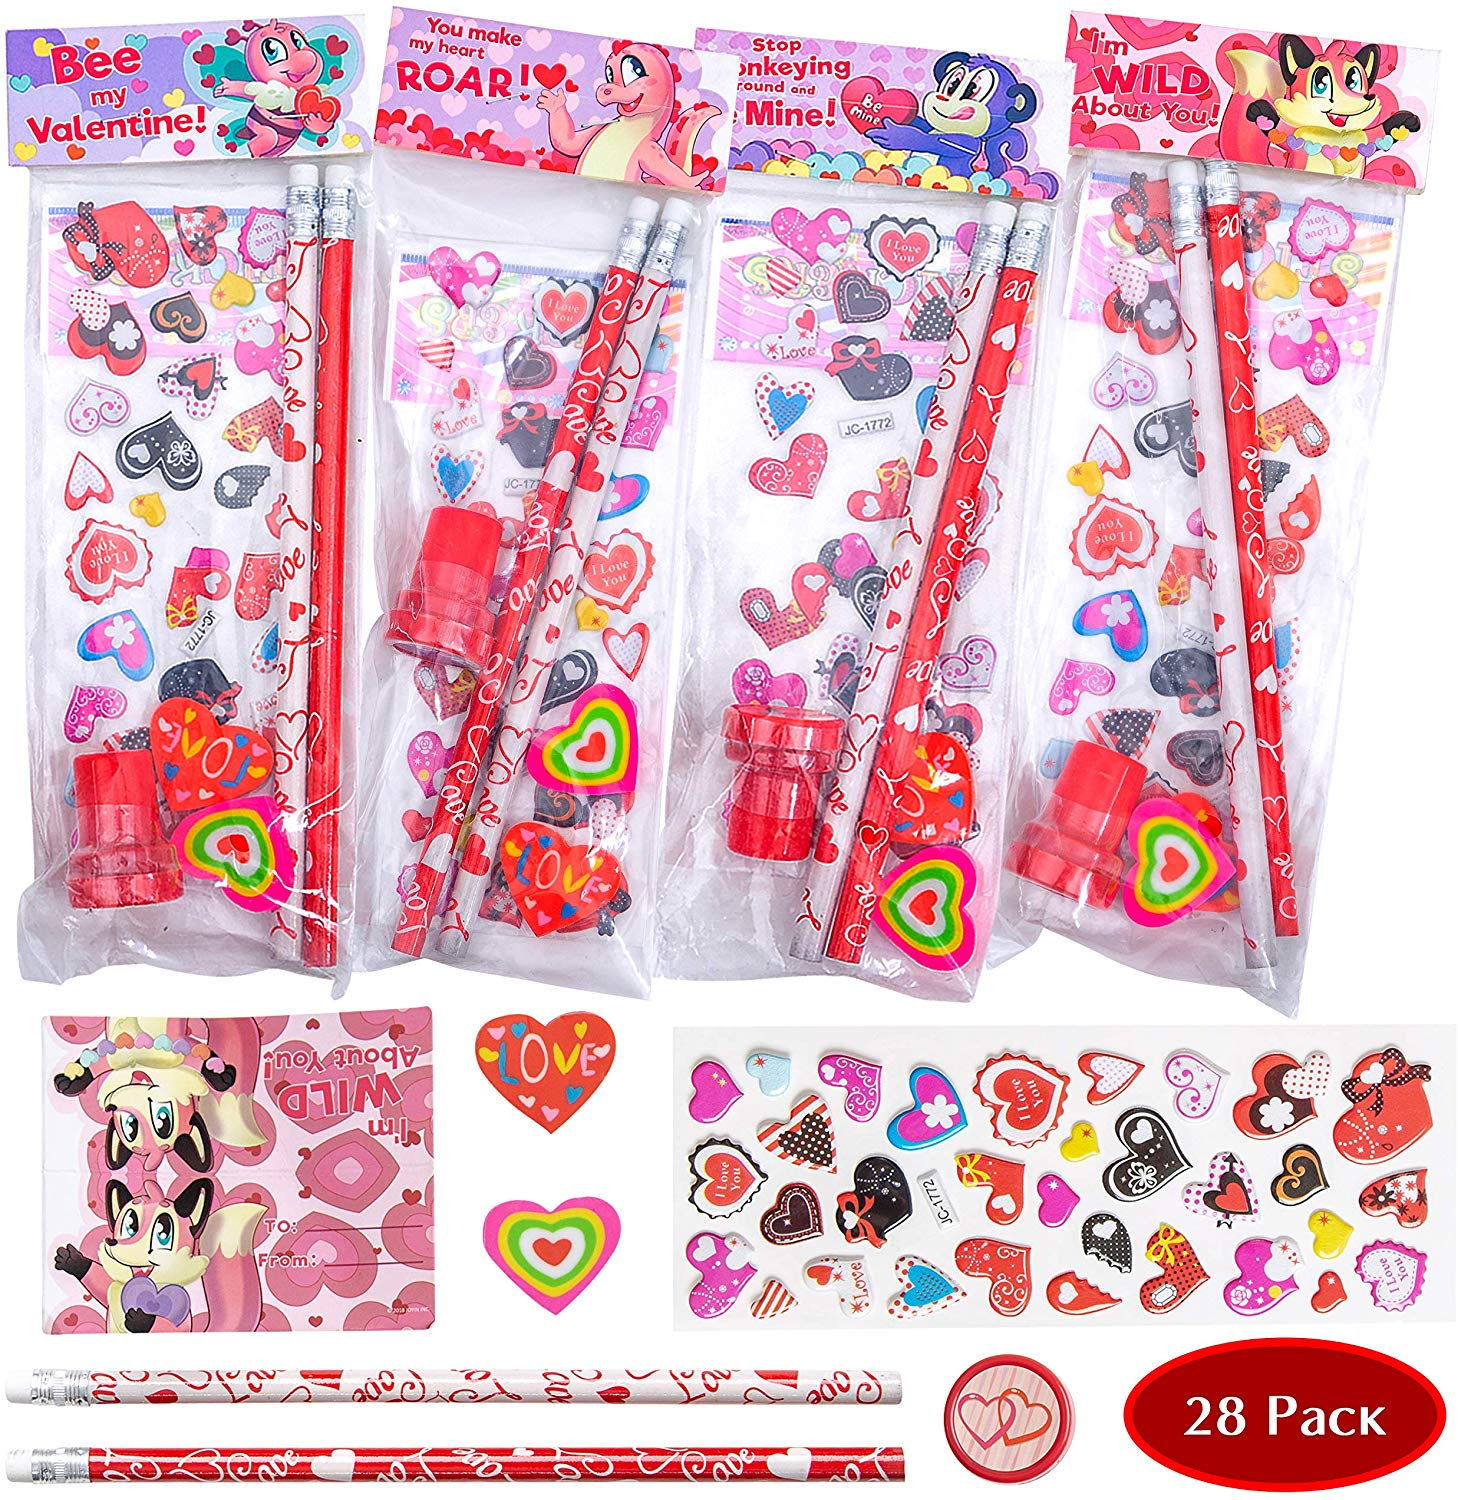 JOYIN 36 pack Valentines Day Gift Cards with Gift Valentine Stampers for Classroom Exchange Prizes Party Favor Toys